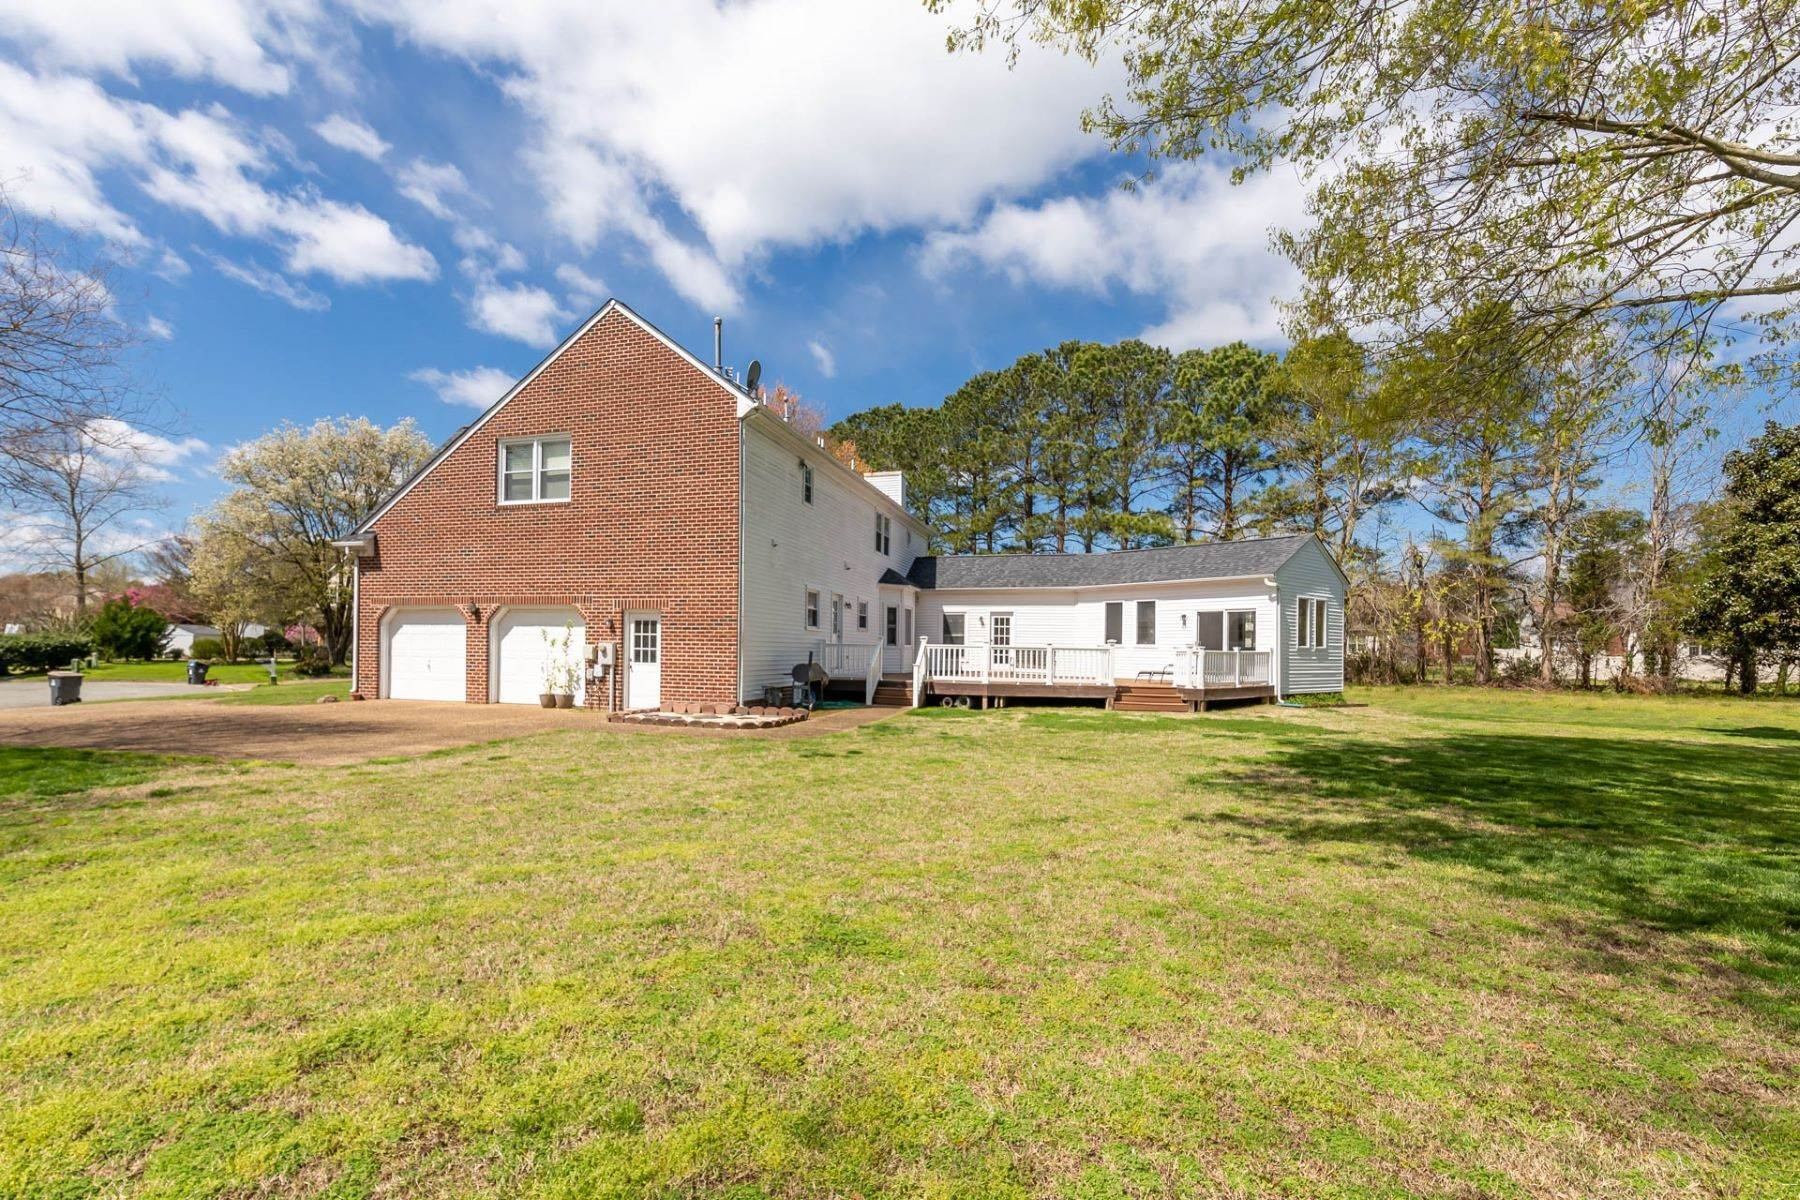 36. Single Family Homes for Sale at Valmoore Estates 4 Tennis Circle Poquoson, Virginia 23662 United States